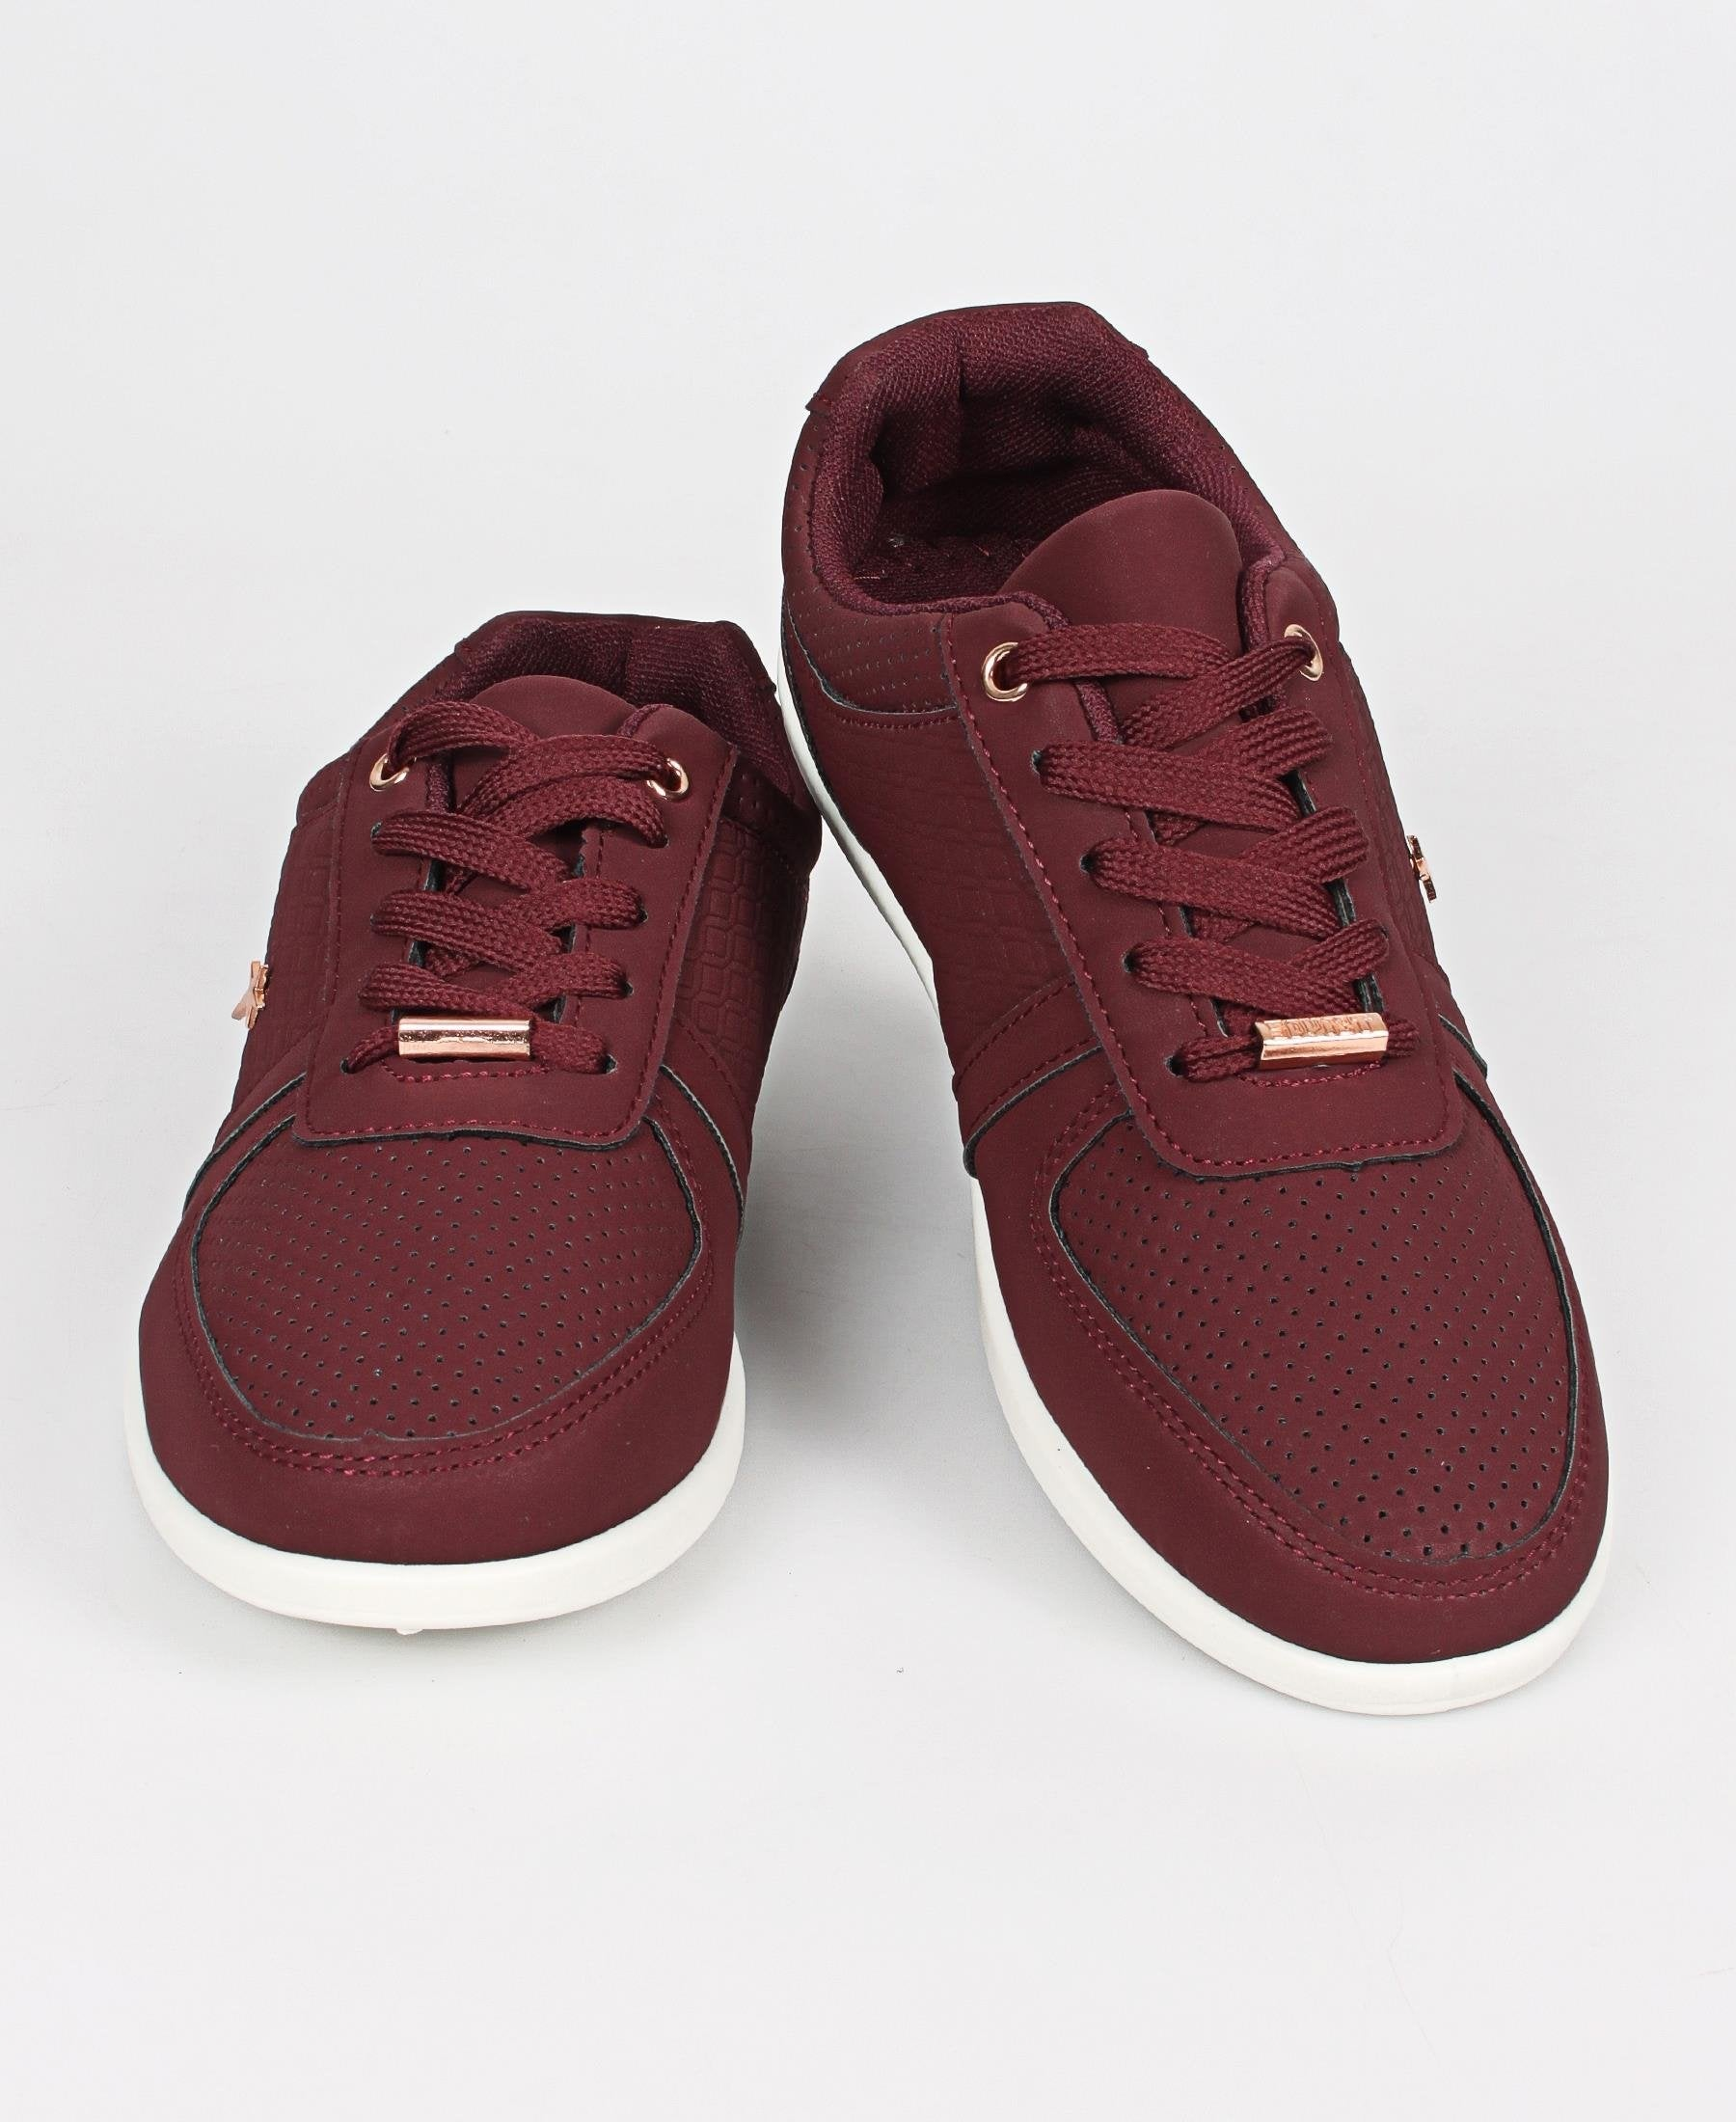 Ladies' Debbie Sneakers - Plum